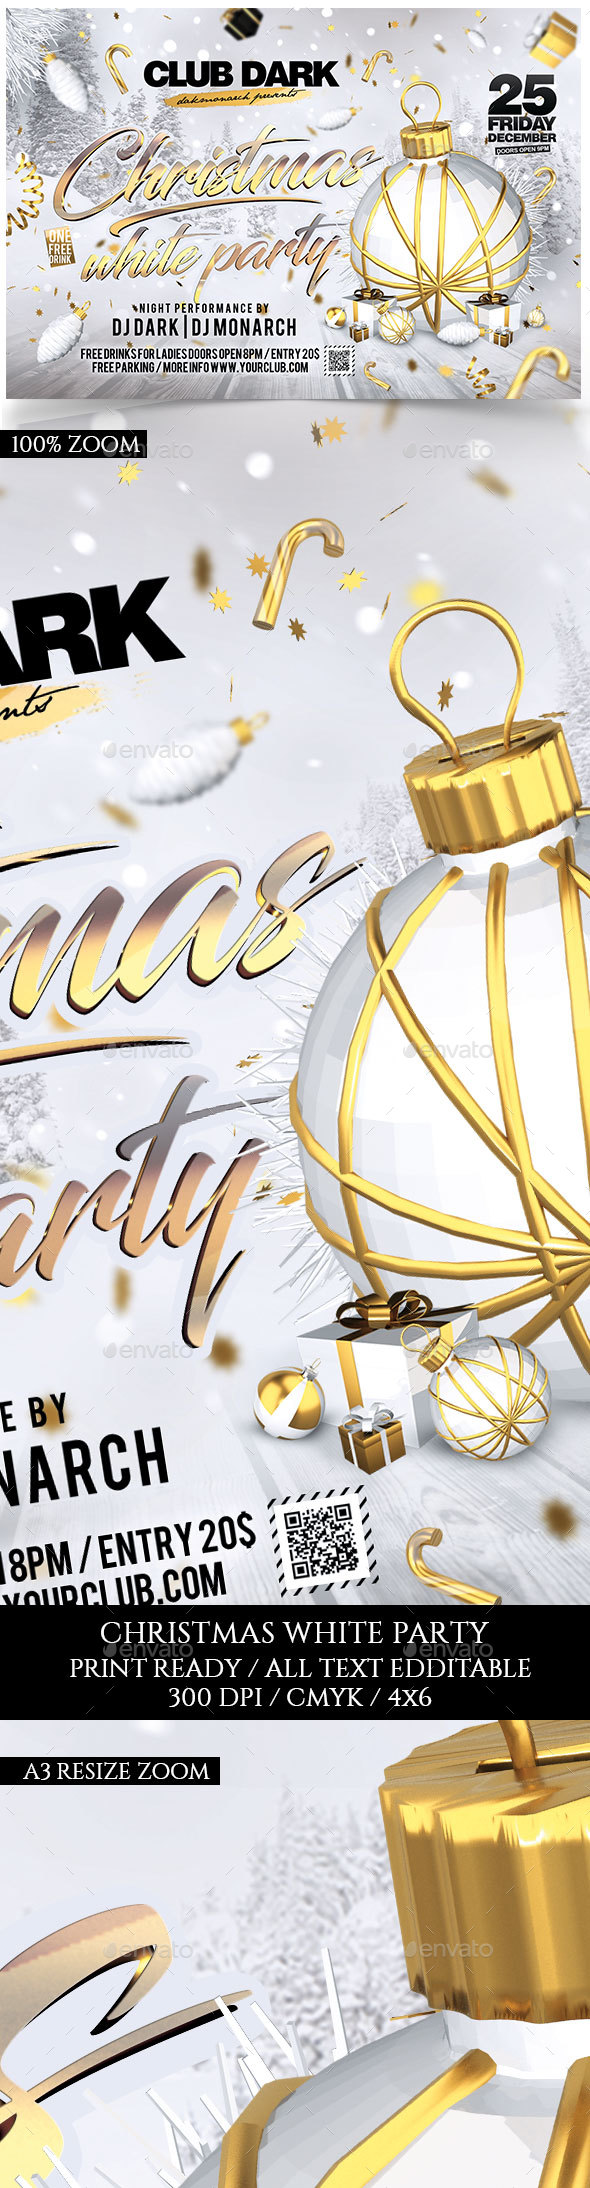 Christmas White Party Flyer - Holidays Events